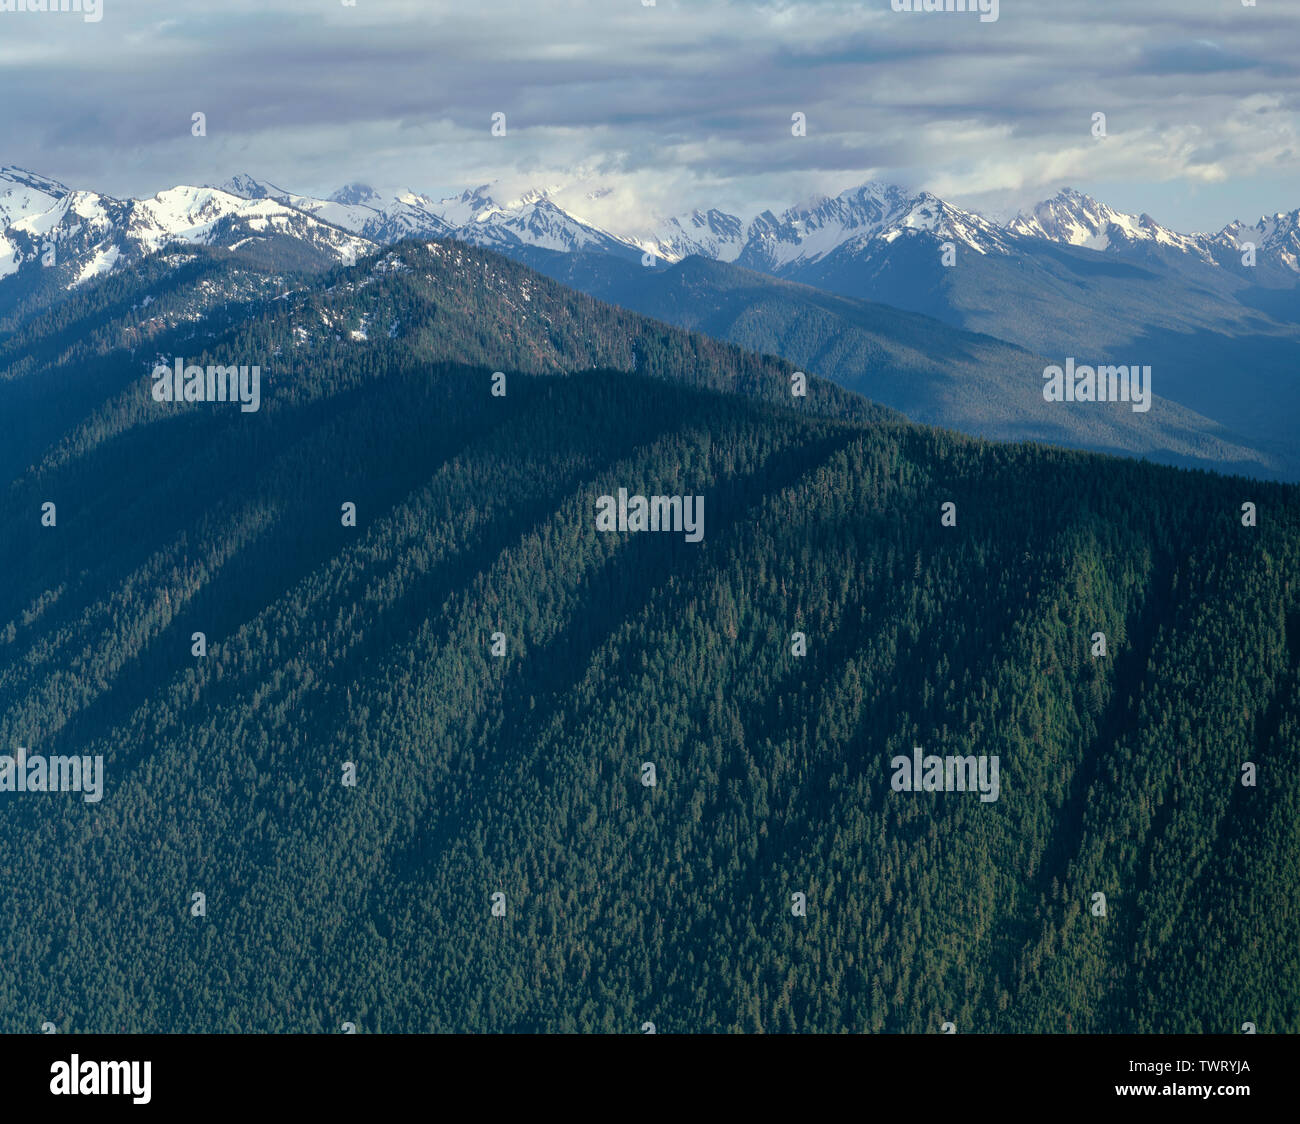 USA, Washington, Olympic National Park, Late springtime view south from near Hurricane Ridge towards ridgeline and Elwah River Valley (top right). - Stock Image